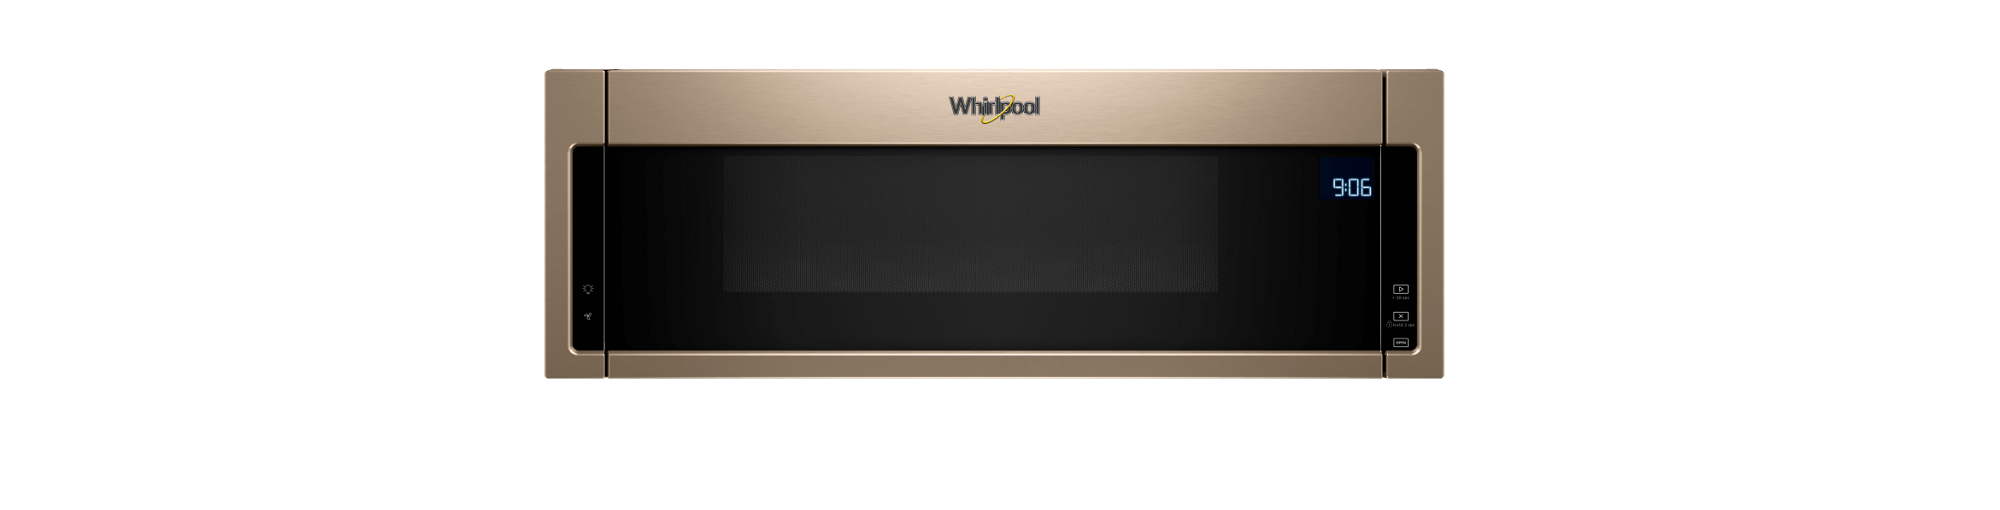 microwave pacific over range countertop the cu whirlpool sd black ft pdp at